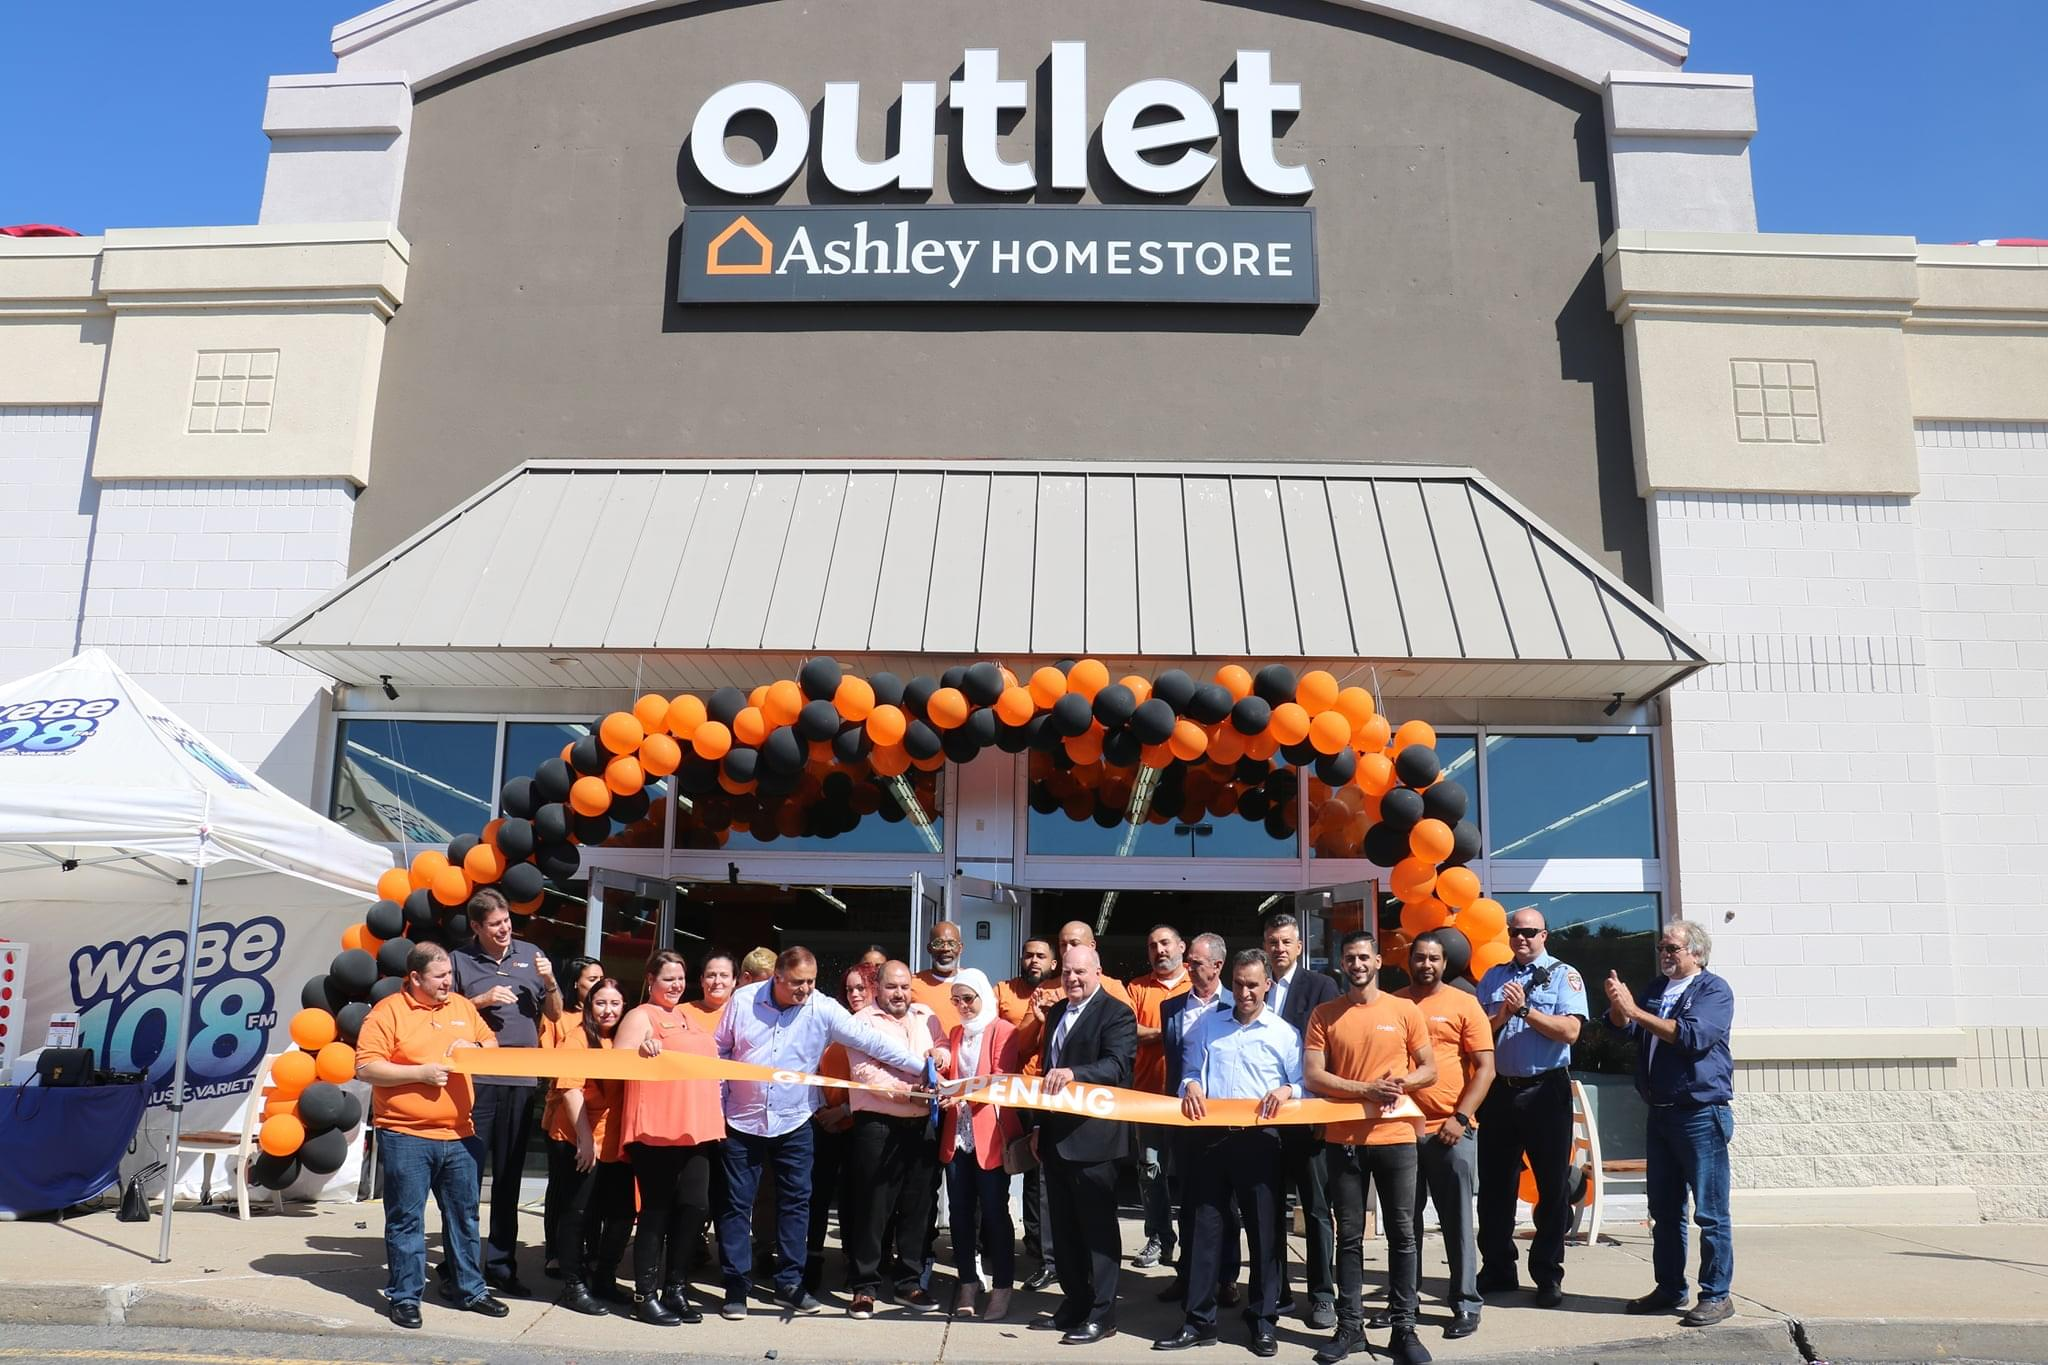 Ashley Homestore Waterbury Outlet Grand Opening